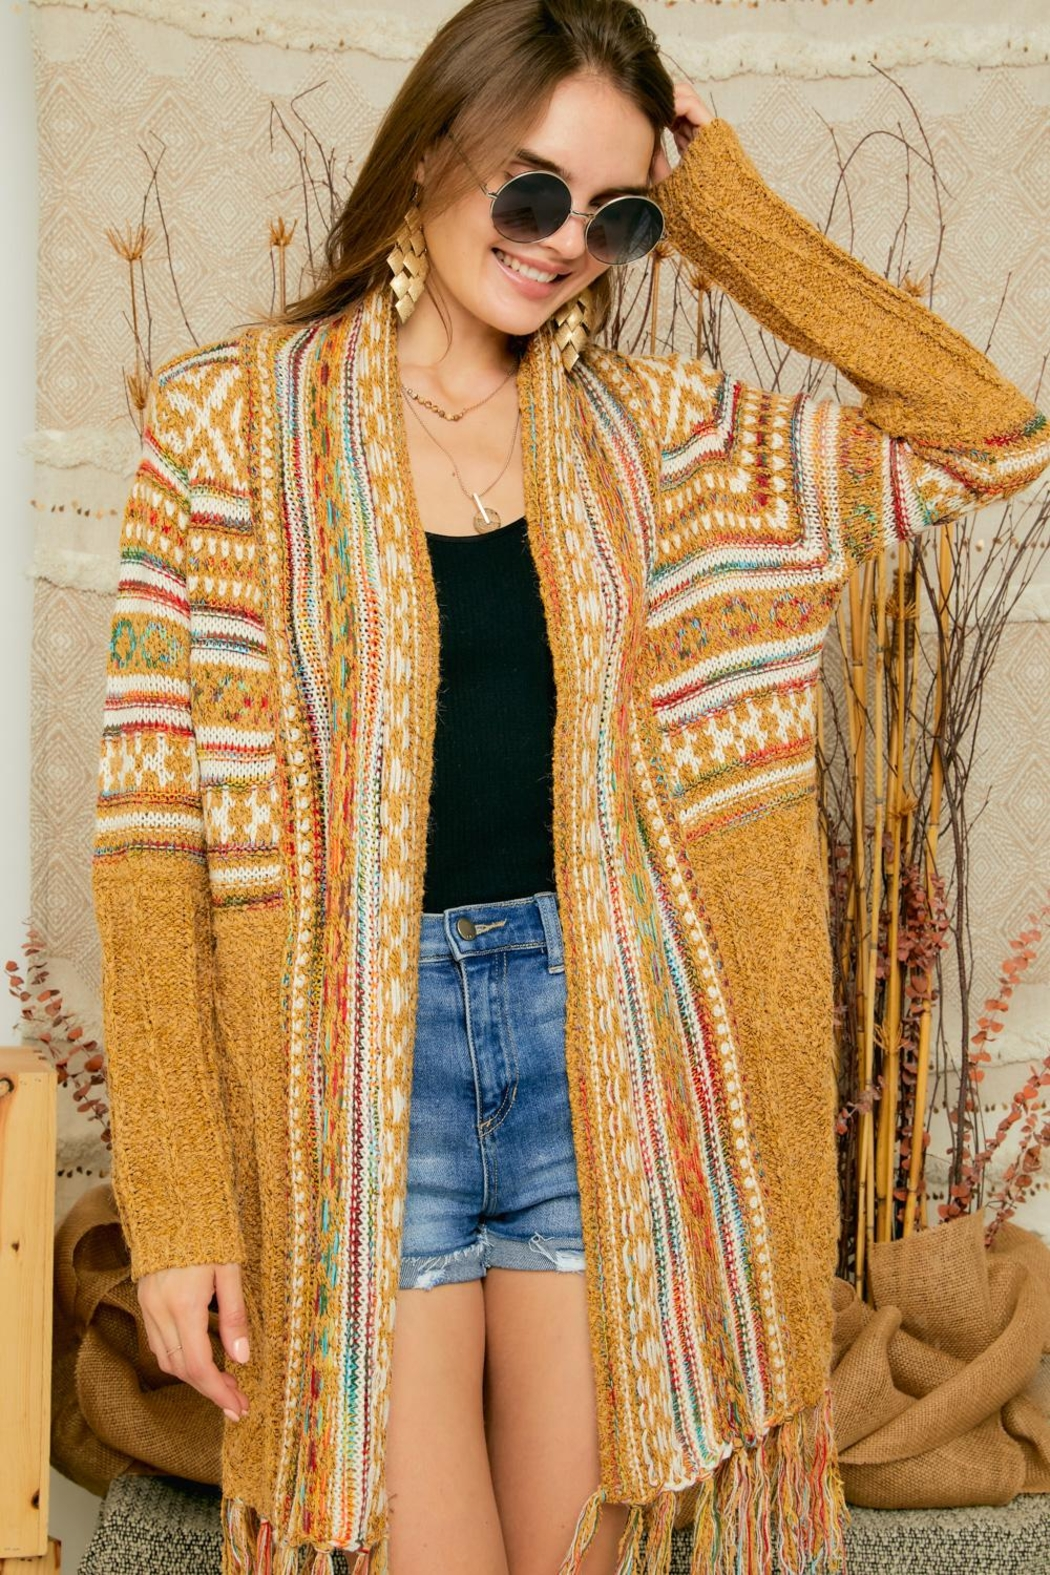 Adora Aztec Tribal Print Boho Knit Sweater Cardigan With Tassel - Front Cropped Image